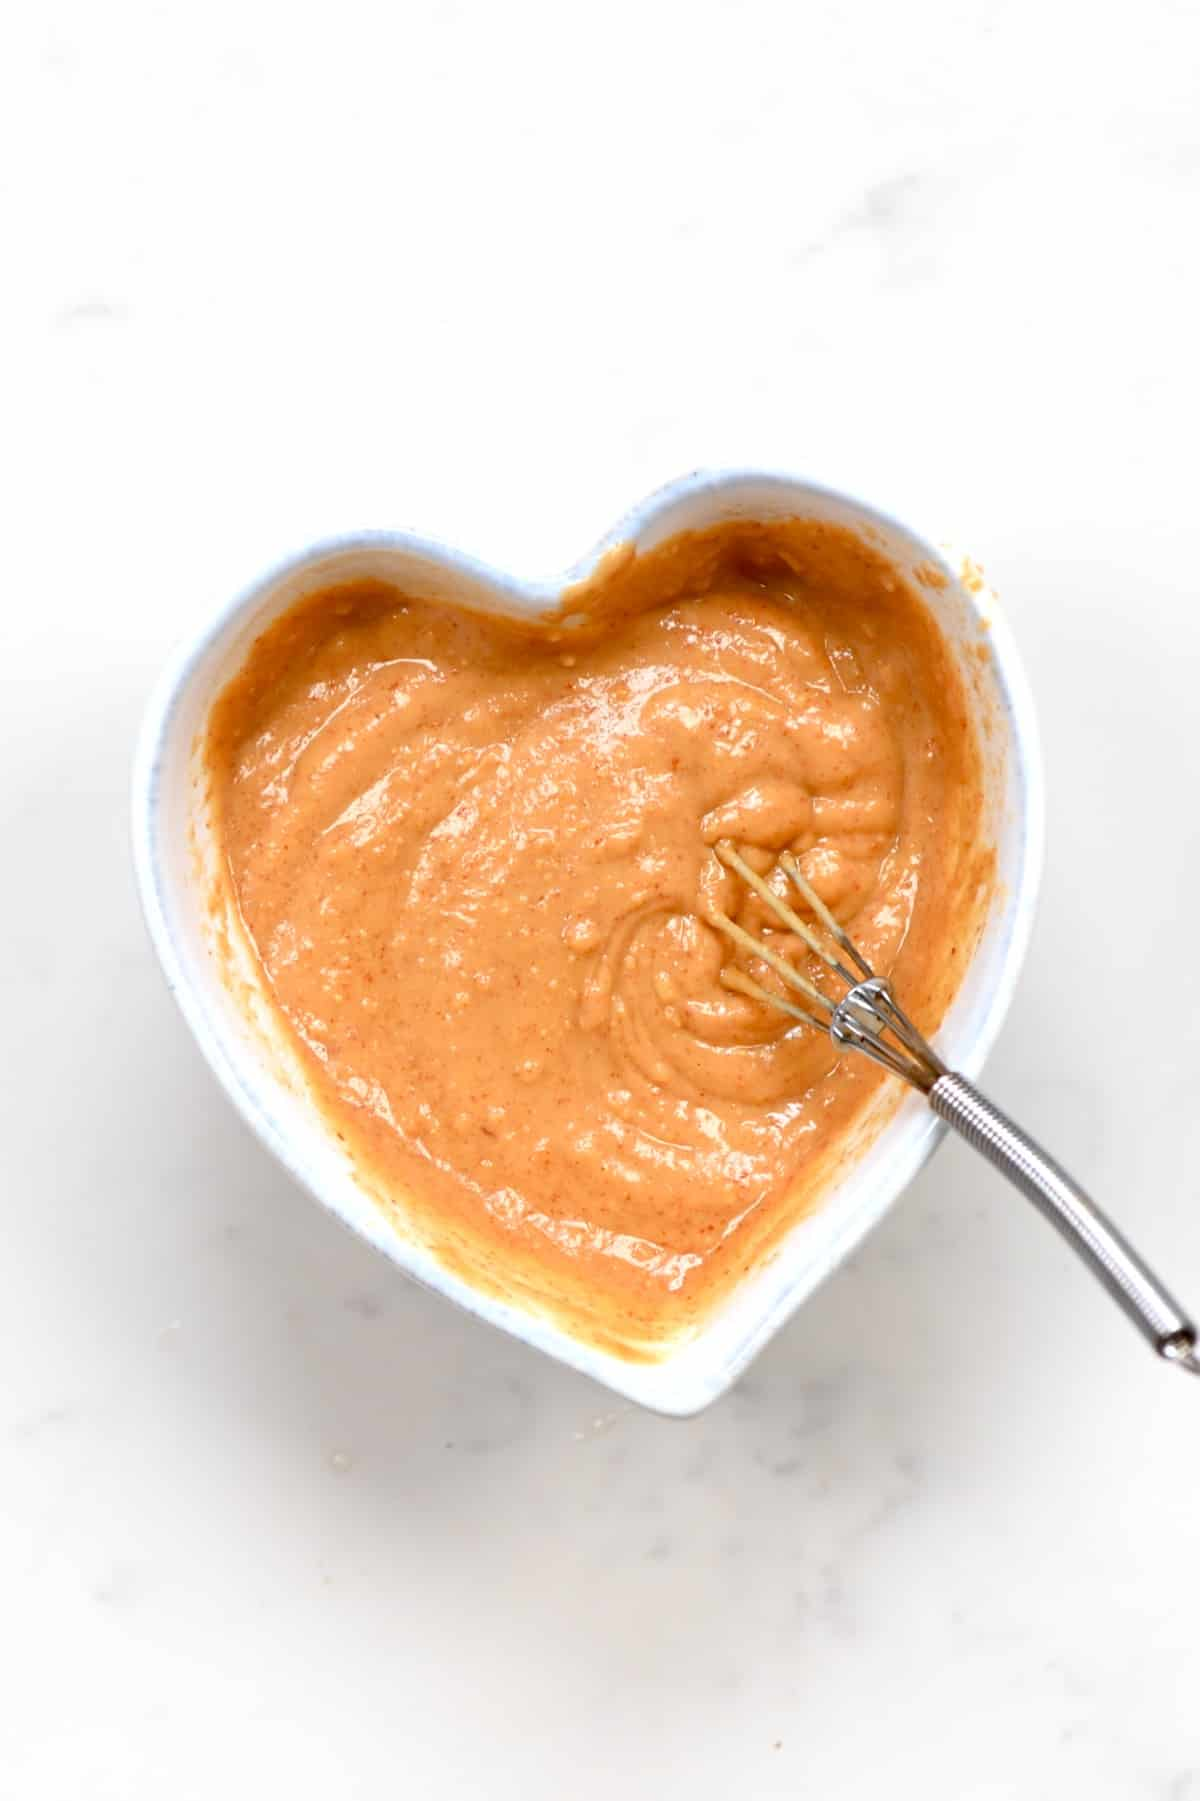 Peanut Dipping Sauce in a heart shaped bowl